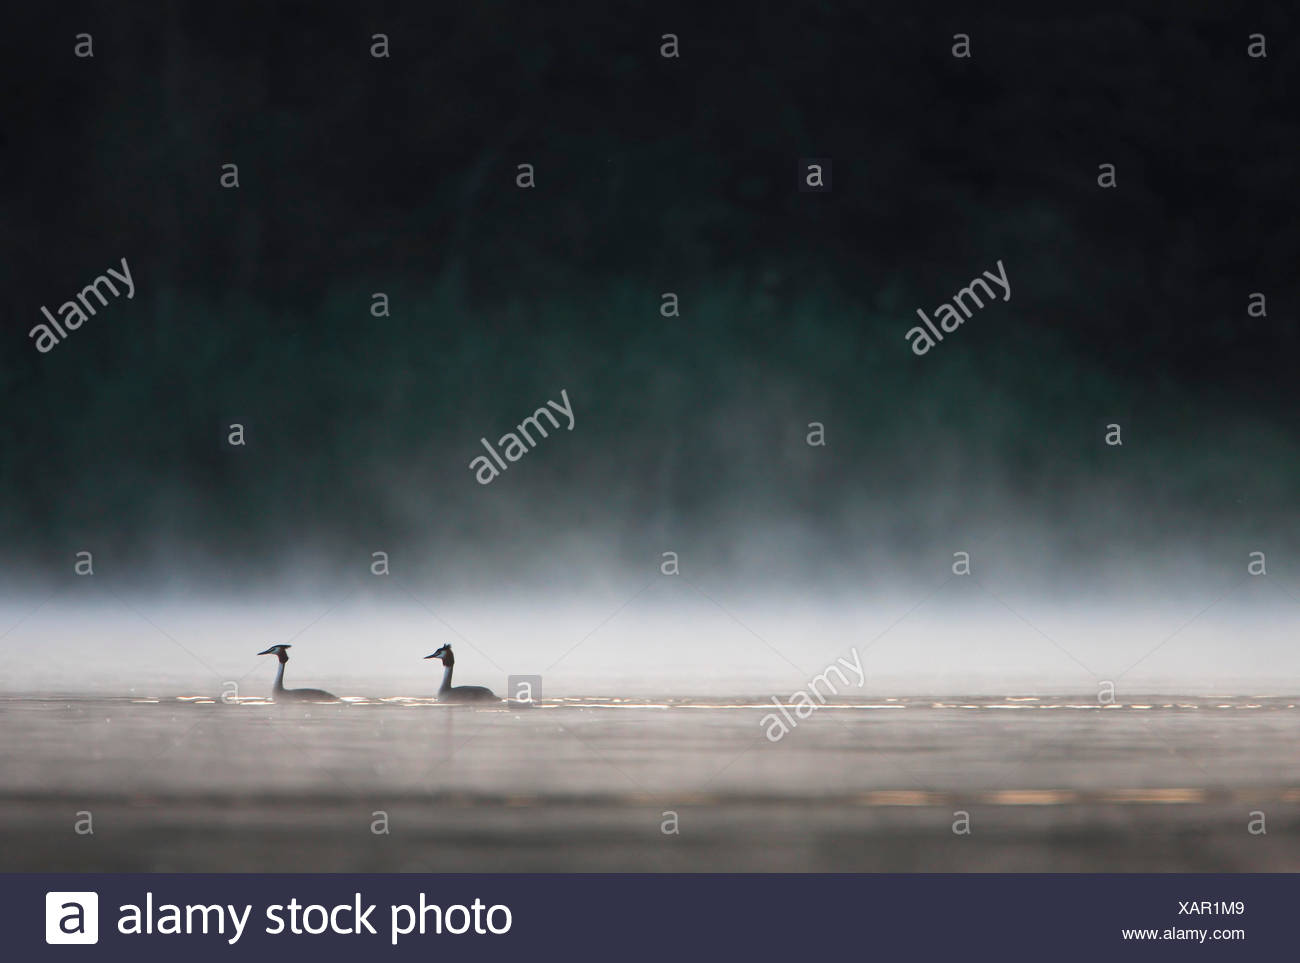 Two Great Crested Grebes on a lake - Stock Image